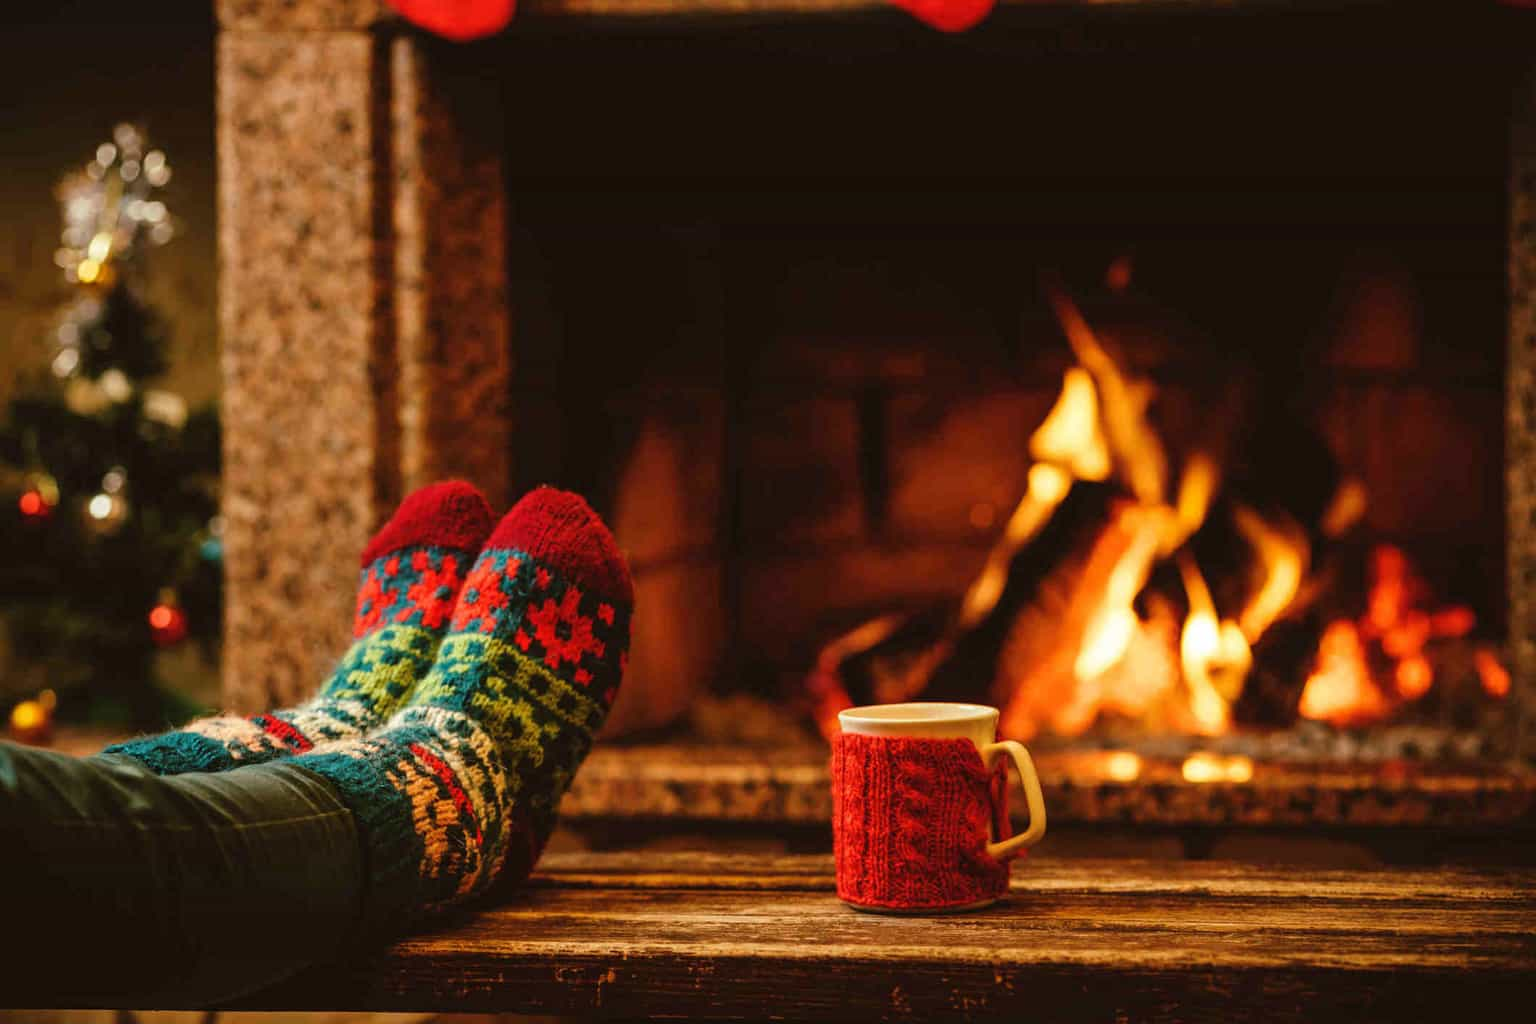 Staying warm can cure depression and anxiety